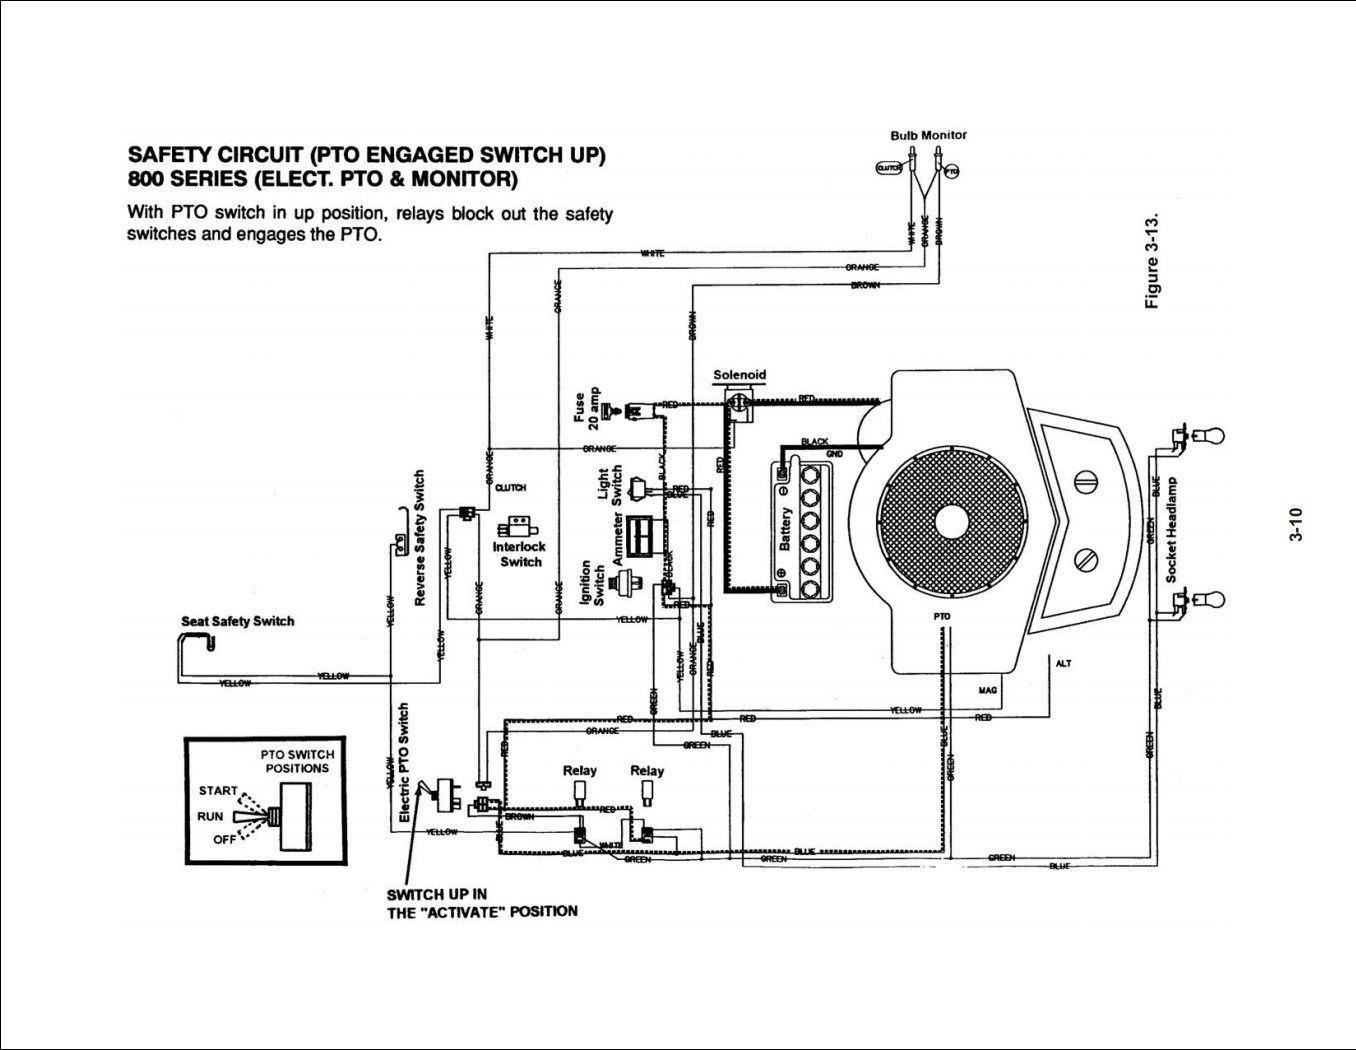 Briggs And Stratton Key Switch Wiring Diagram - Free Wiring Diagram - 6 Pin Switch Wiring Diagram